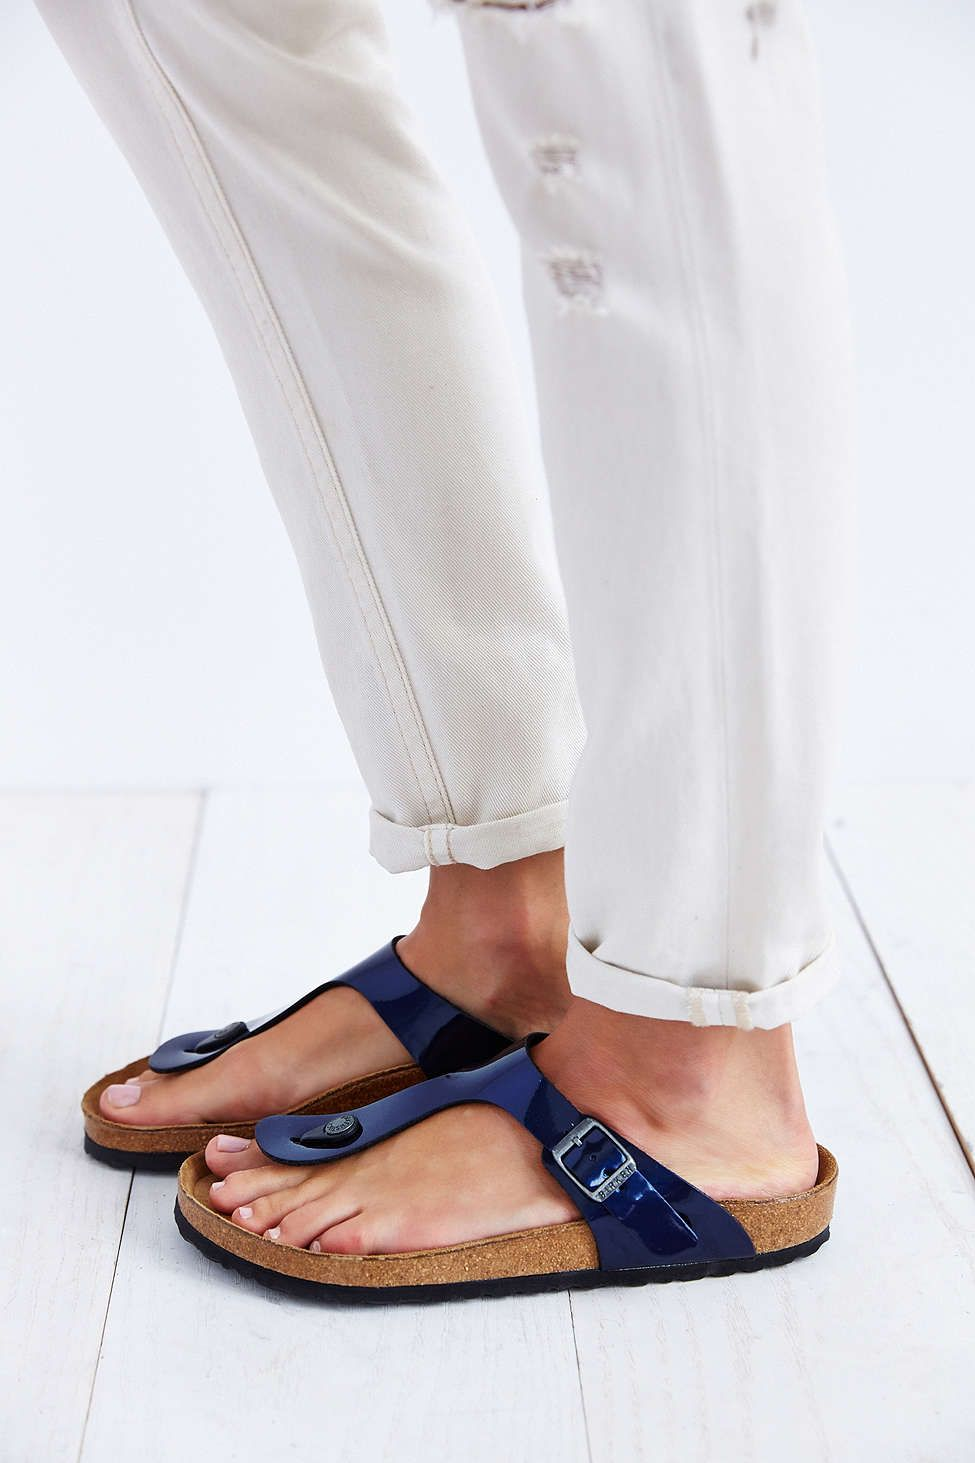 36472ad939d0 Birkenstock Gizeh Thong Sandal - Urban Outfitters